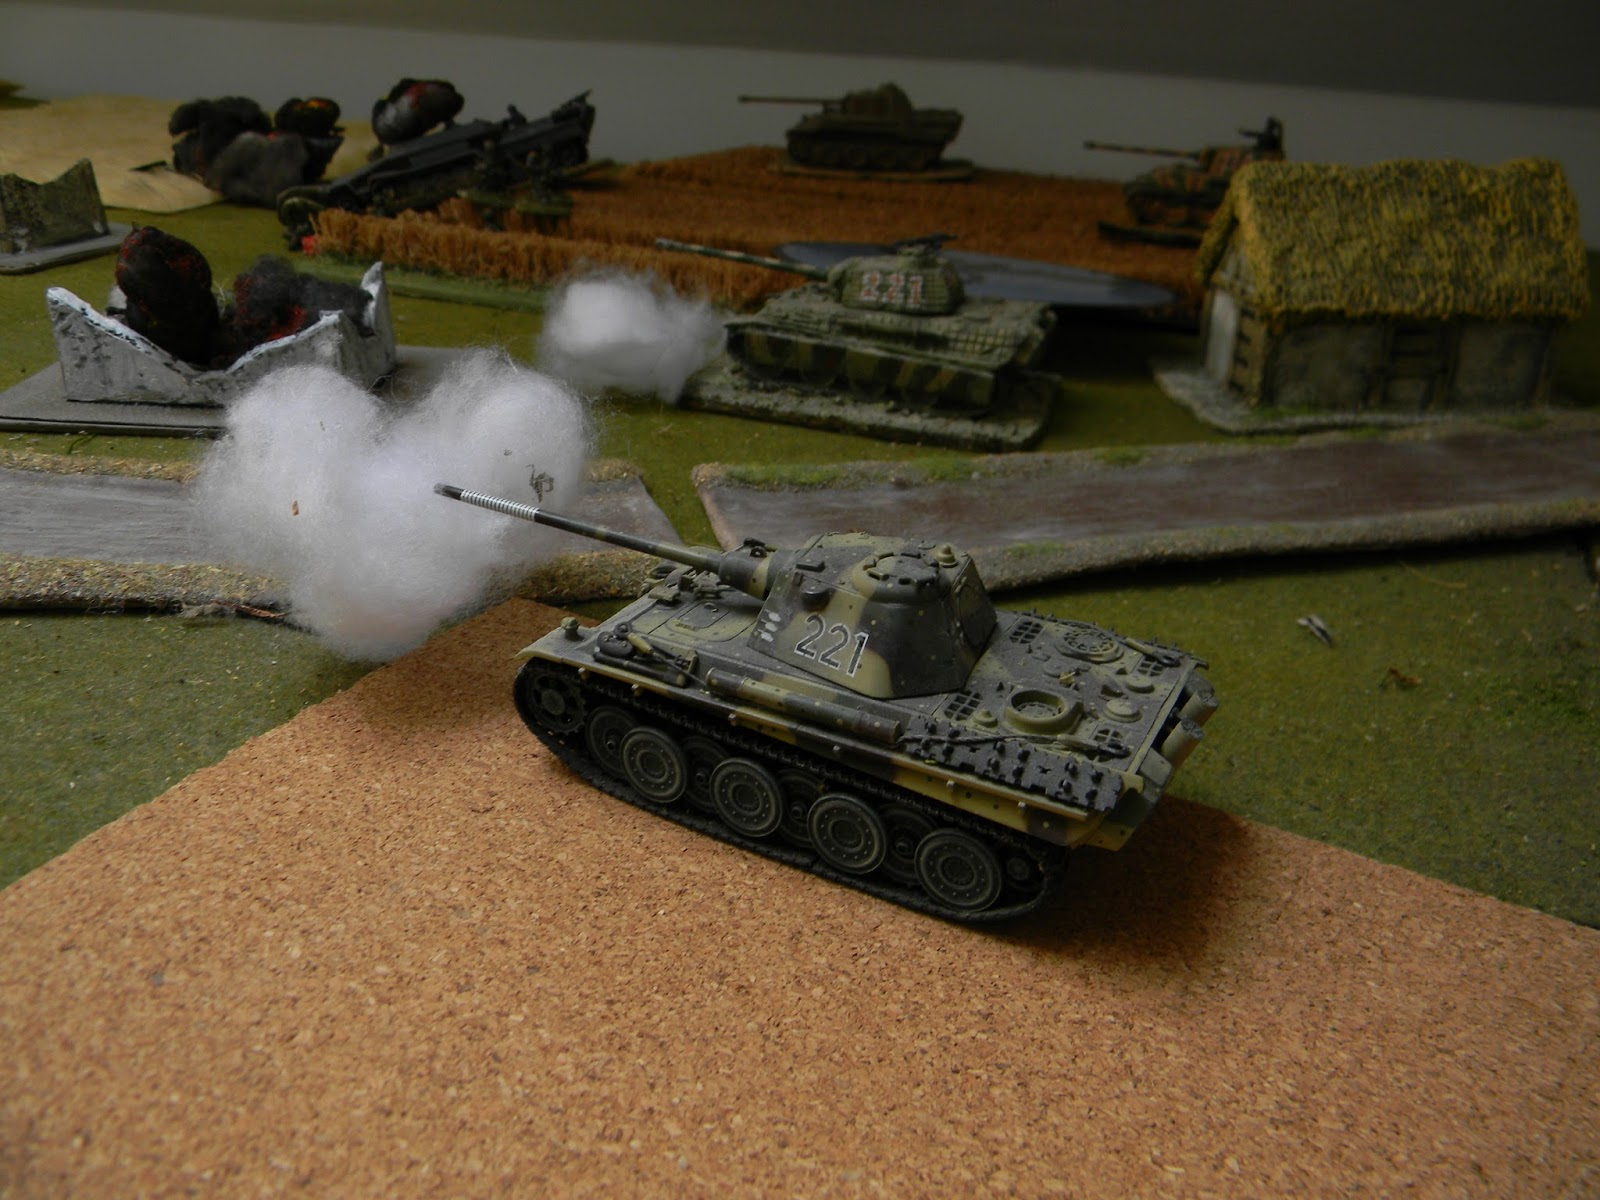 Two Panthers move into town and also aim at the enemy guns